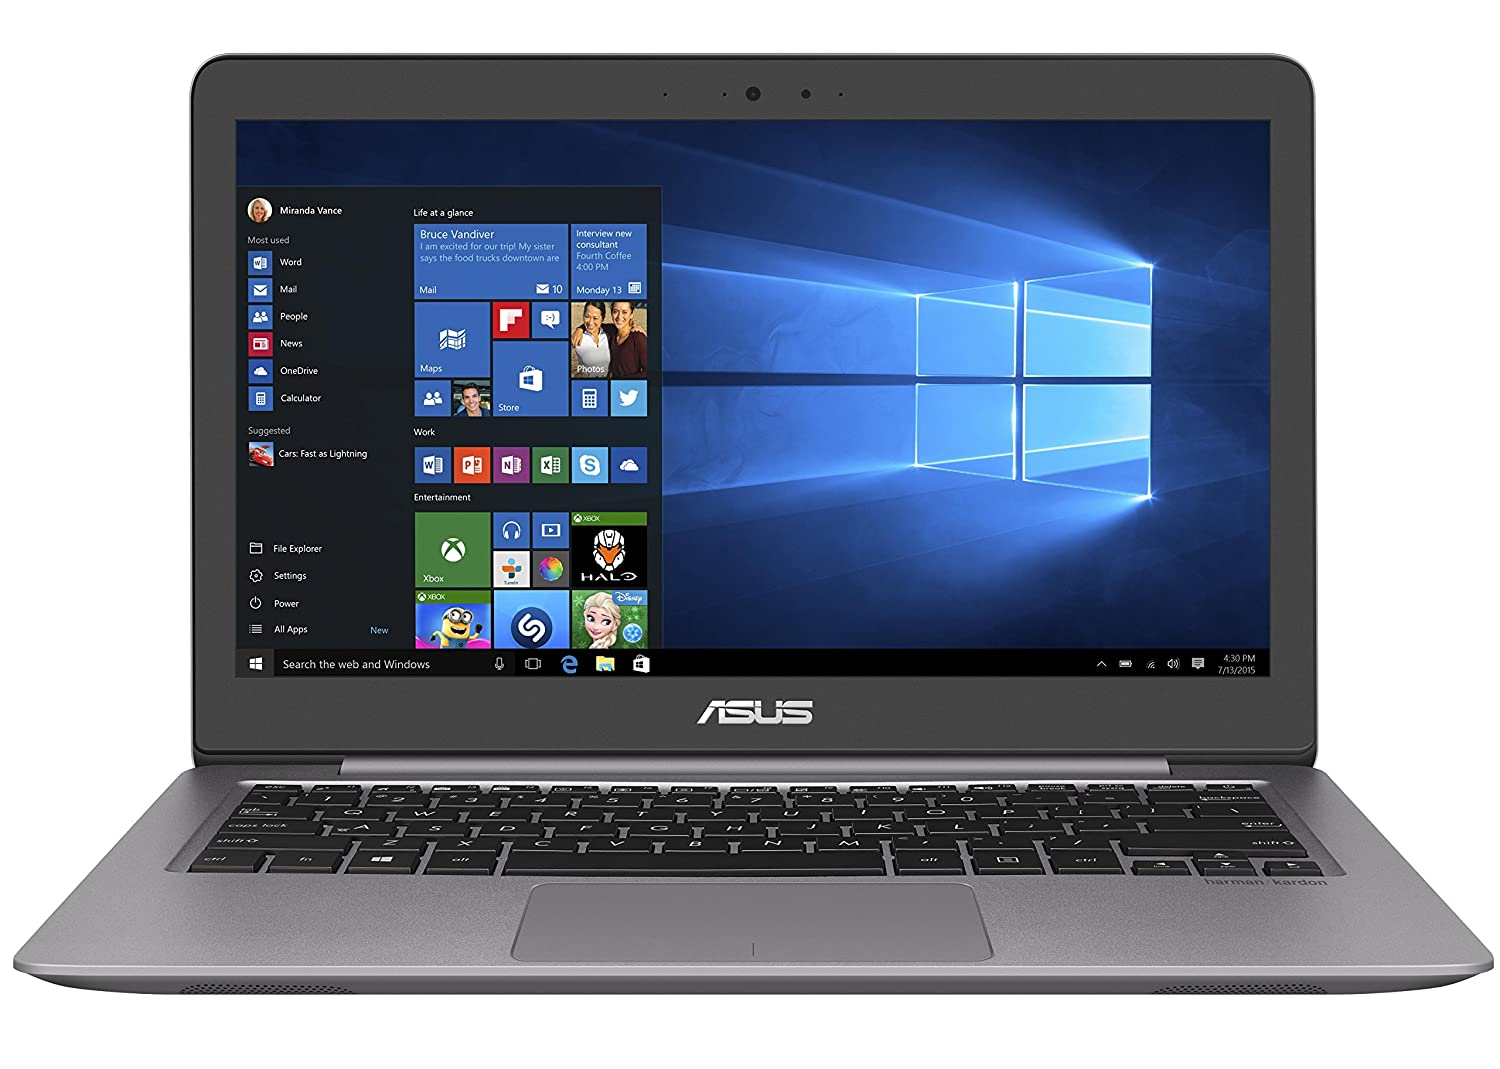 "Asus ZenBook Notebook, Display 13.3"" Full HD"